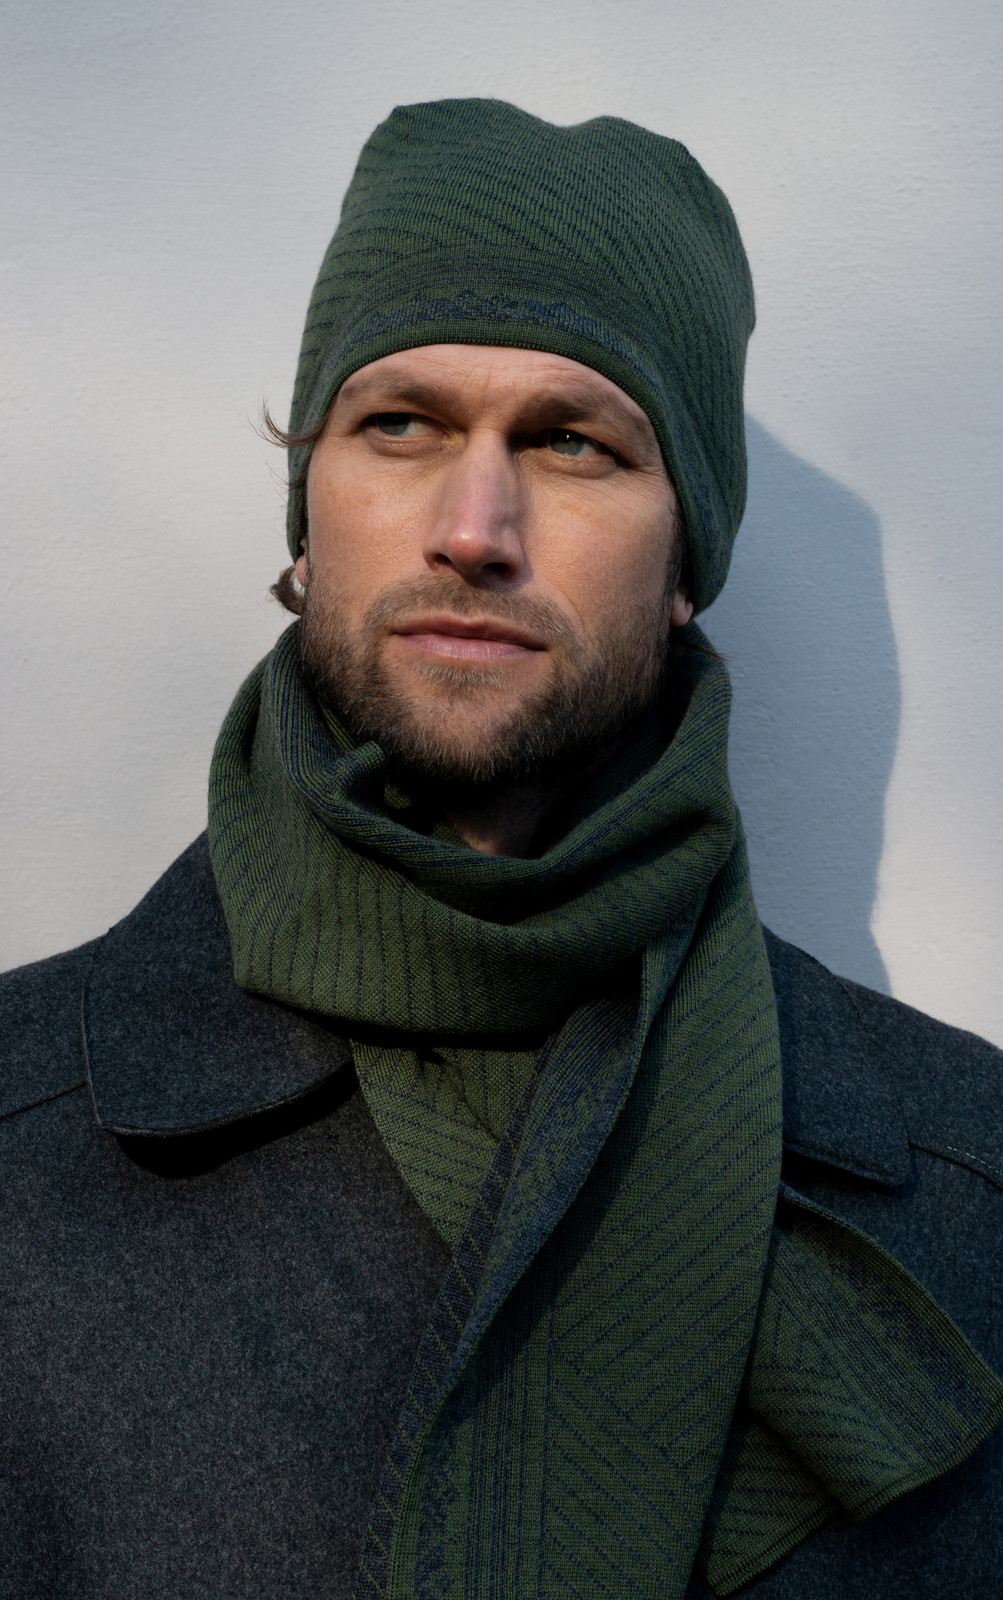 Dale of Norway André Hat - Dark Green/Dark Charcoal, 48771-G